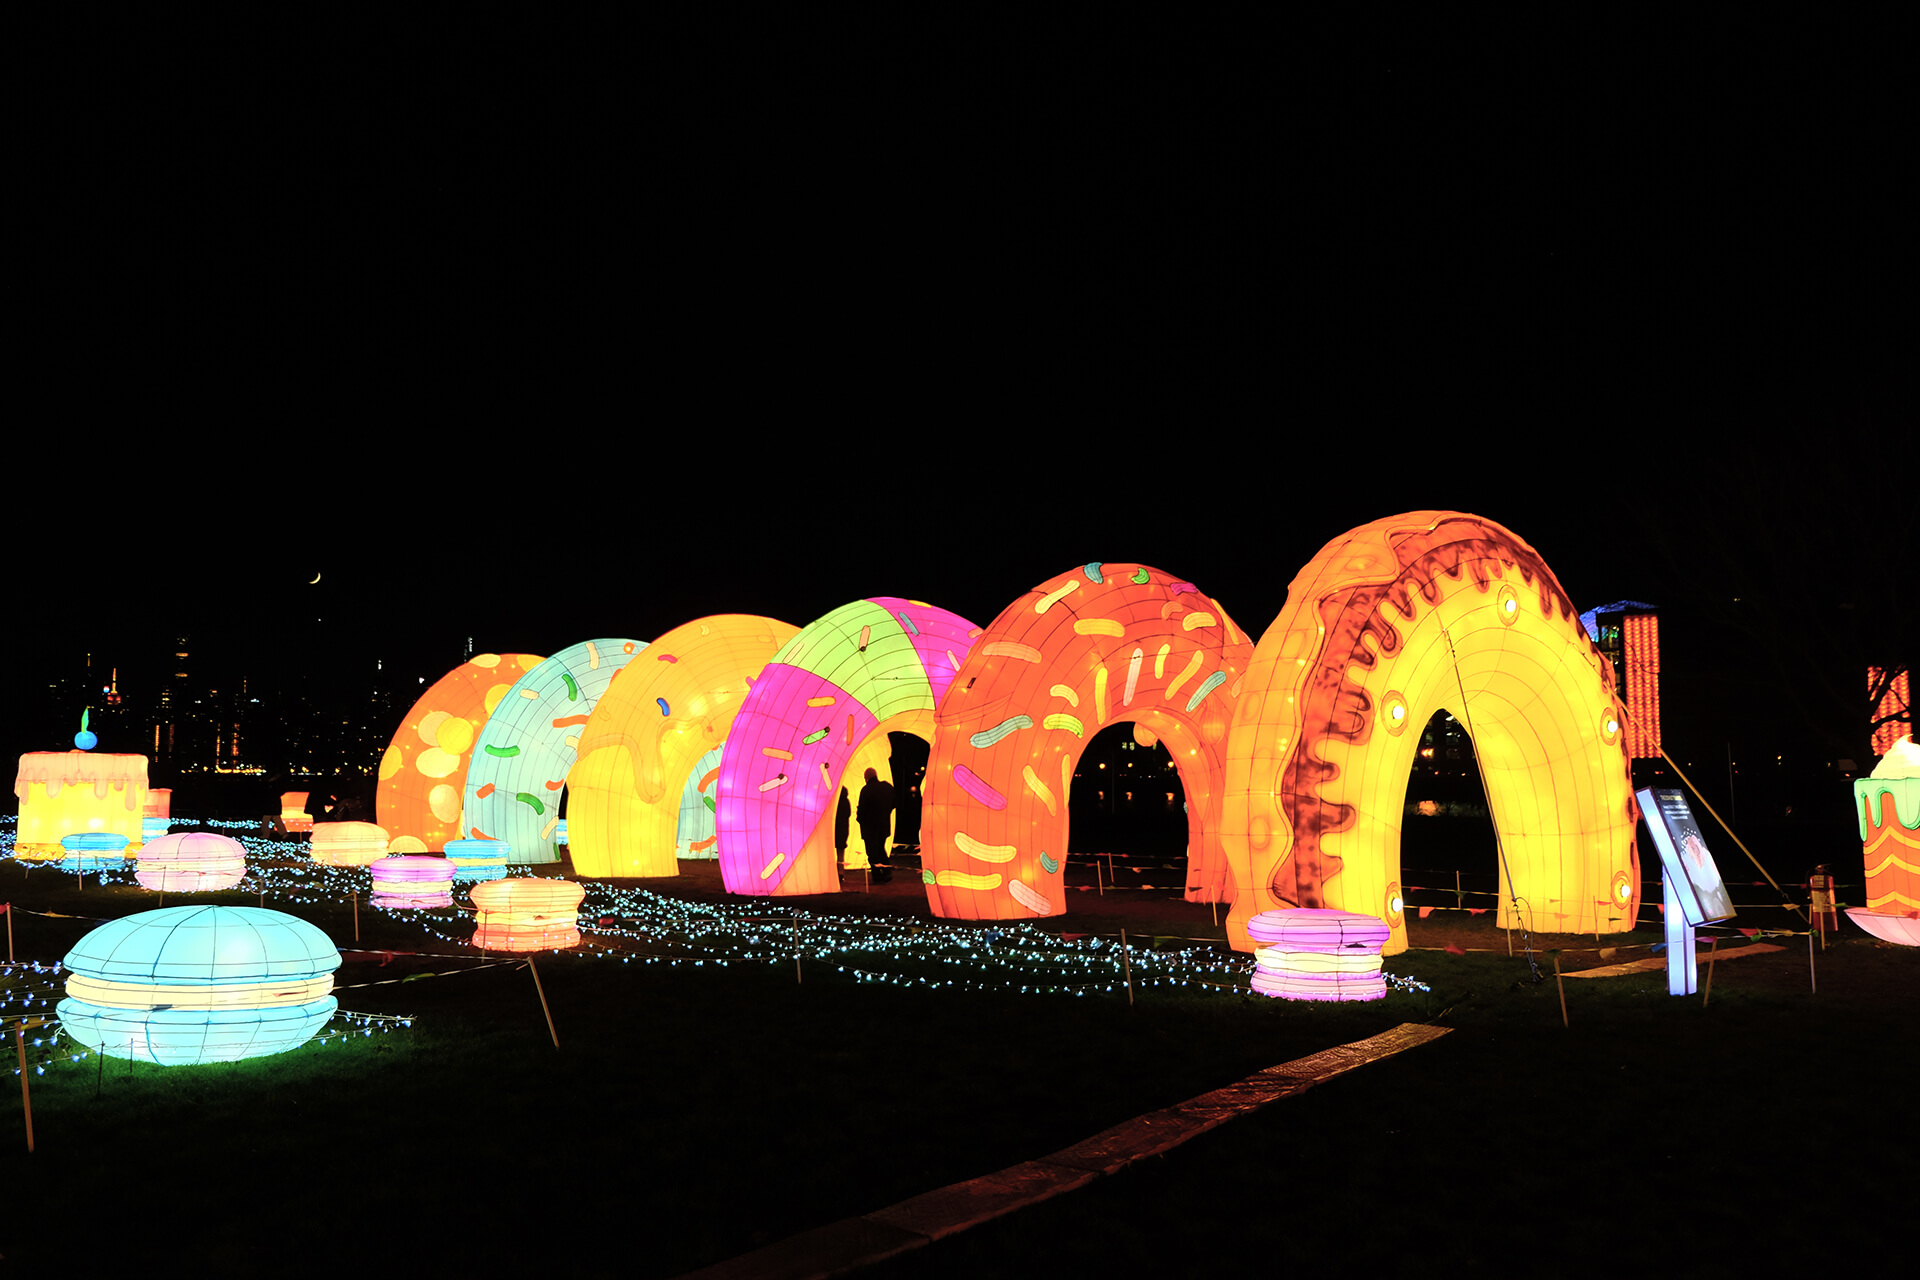 the-donut-tunnel-the-sweet-dream-light-arts-luminocity-festival-rendered-image